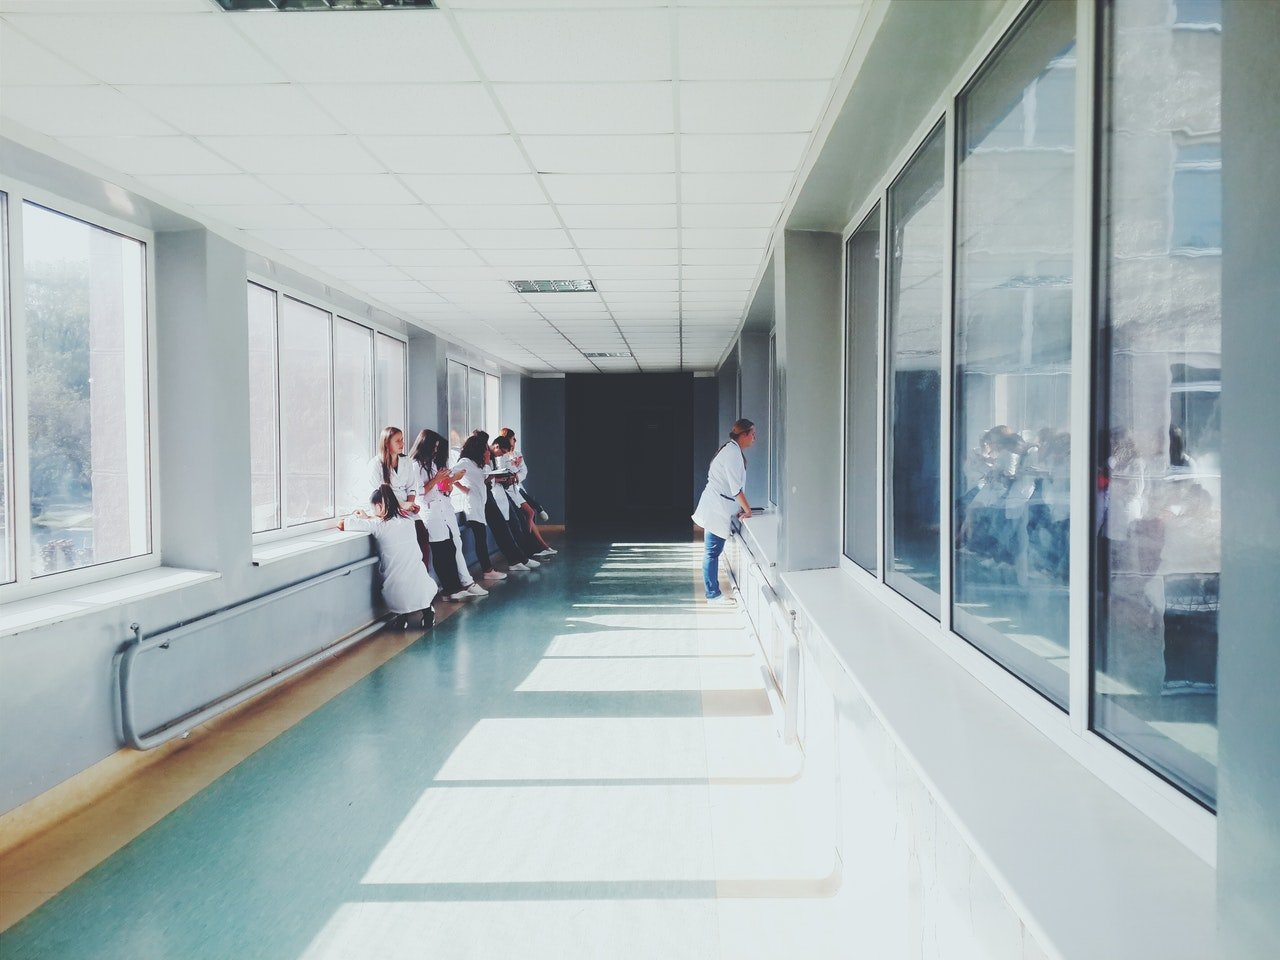 Hallway of a health facility | Photo: Getty Images